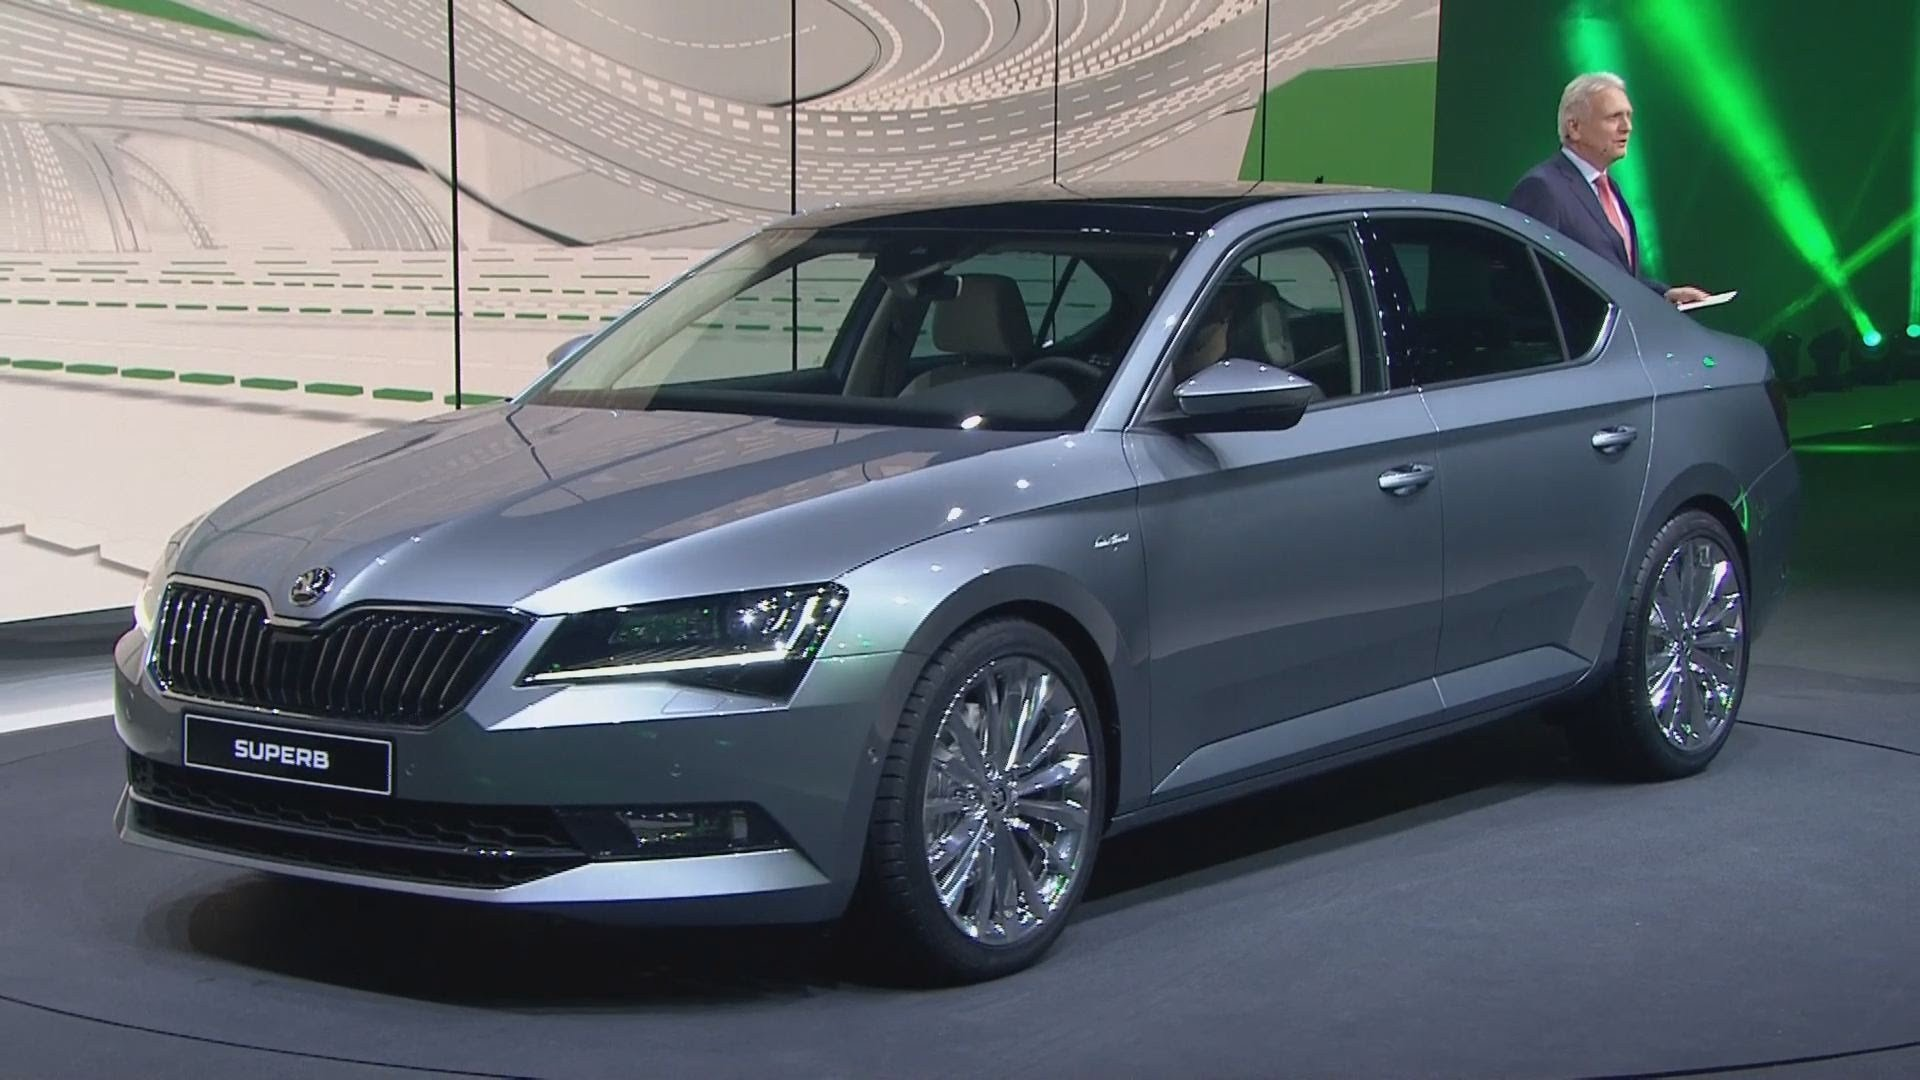 New Skoda Superb 2015 Hd Wallpapers Download On This Month